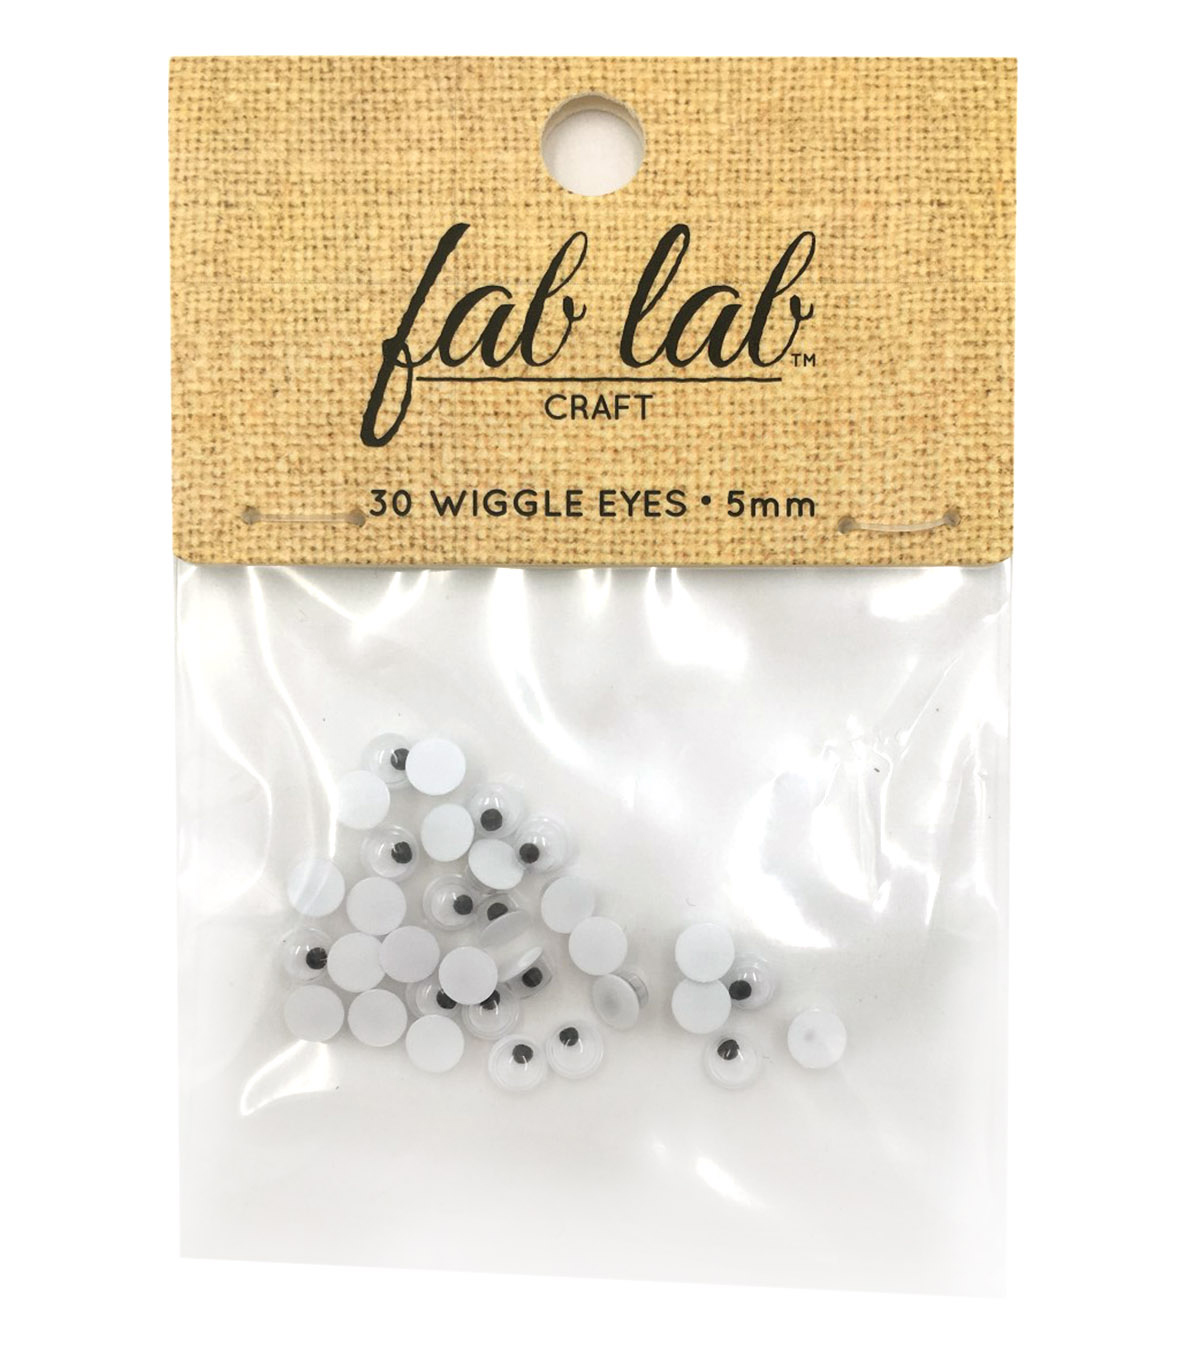 Easyglue Eyes 5mm 30pc